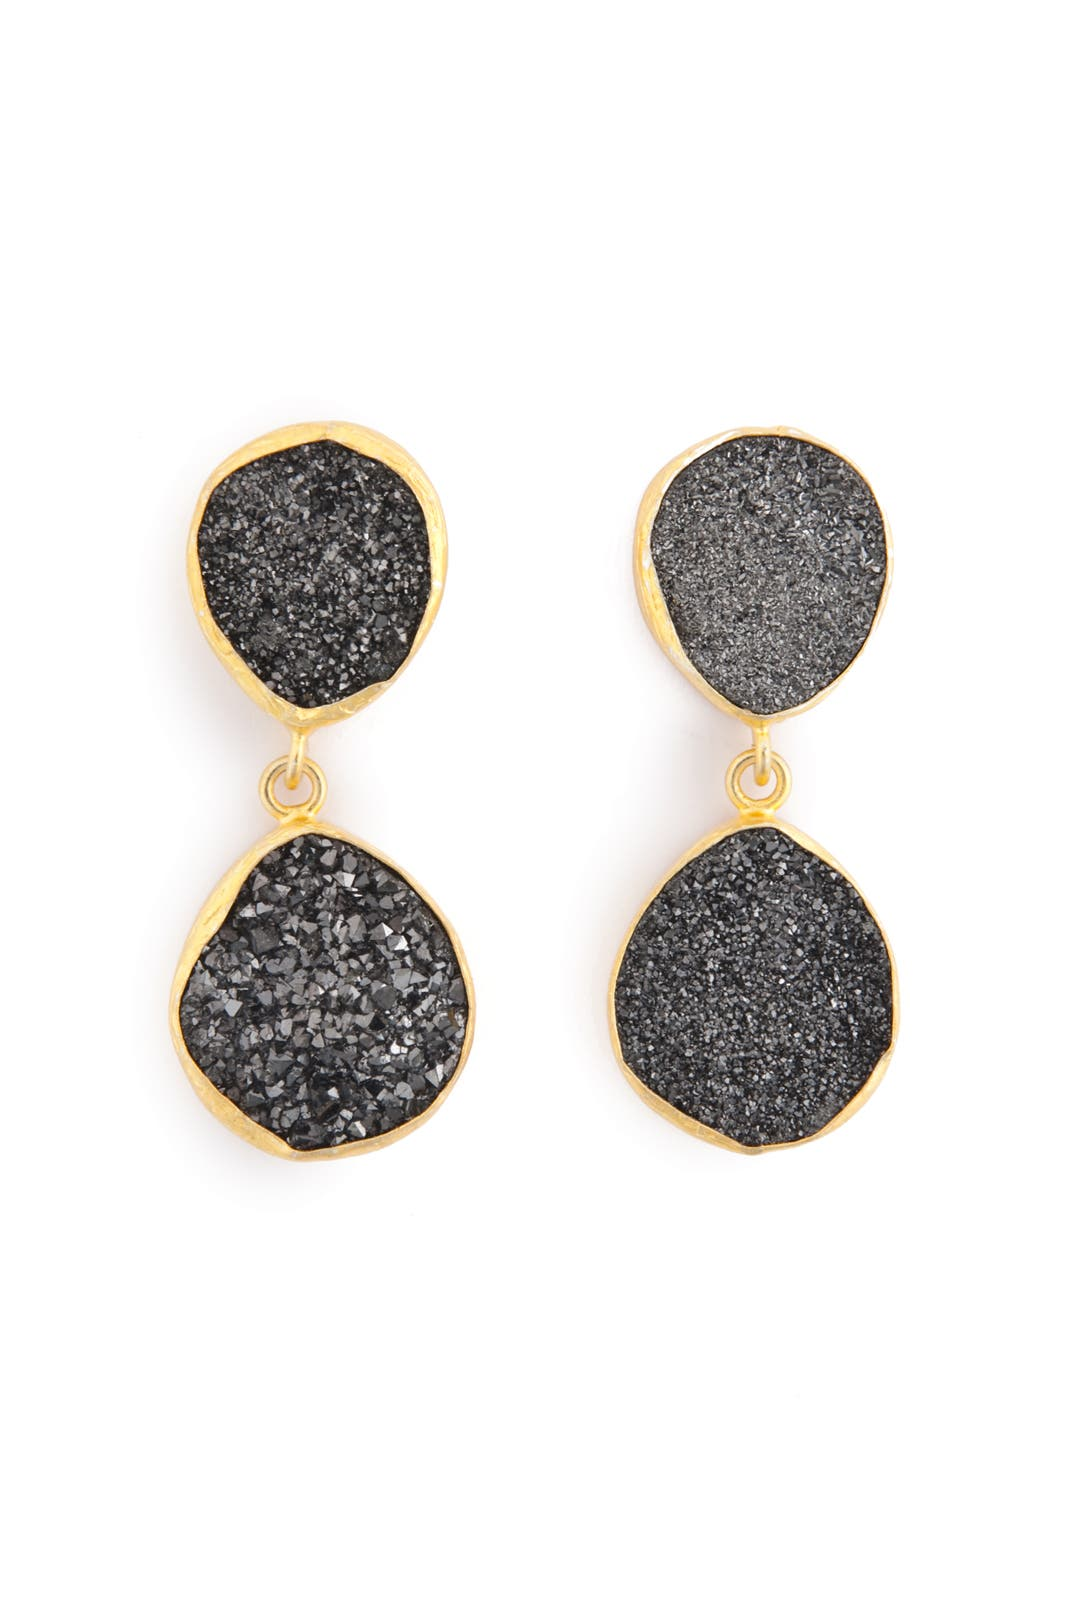 Smokey Droplet Earrings by Coralia Leets